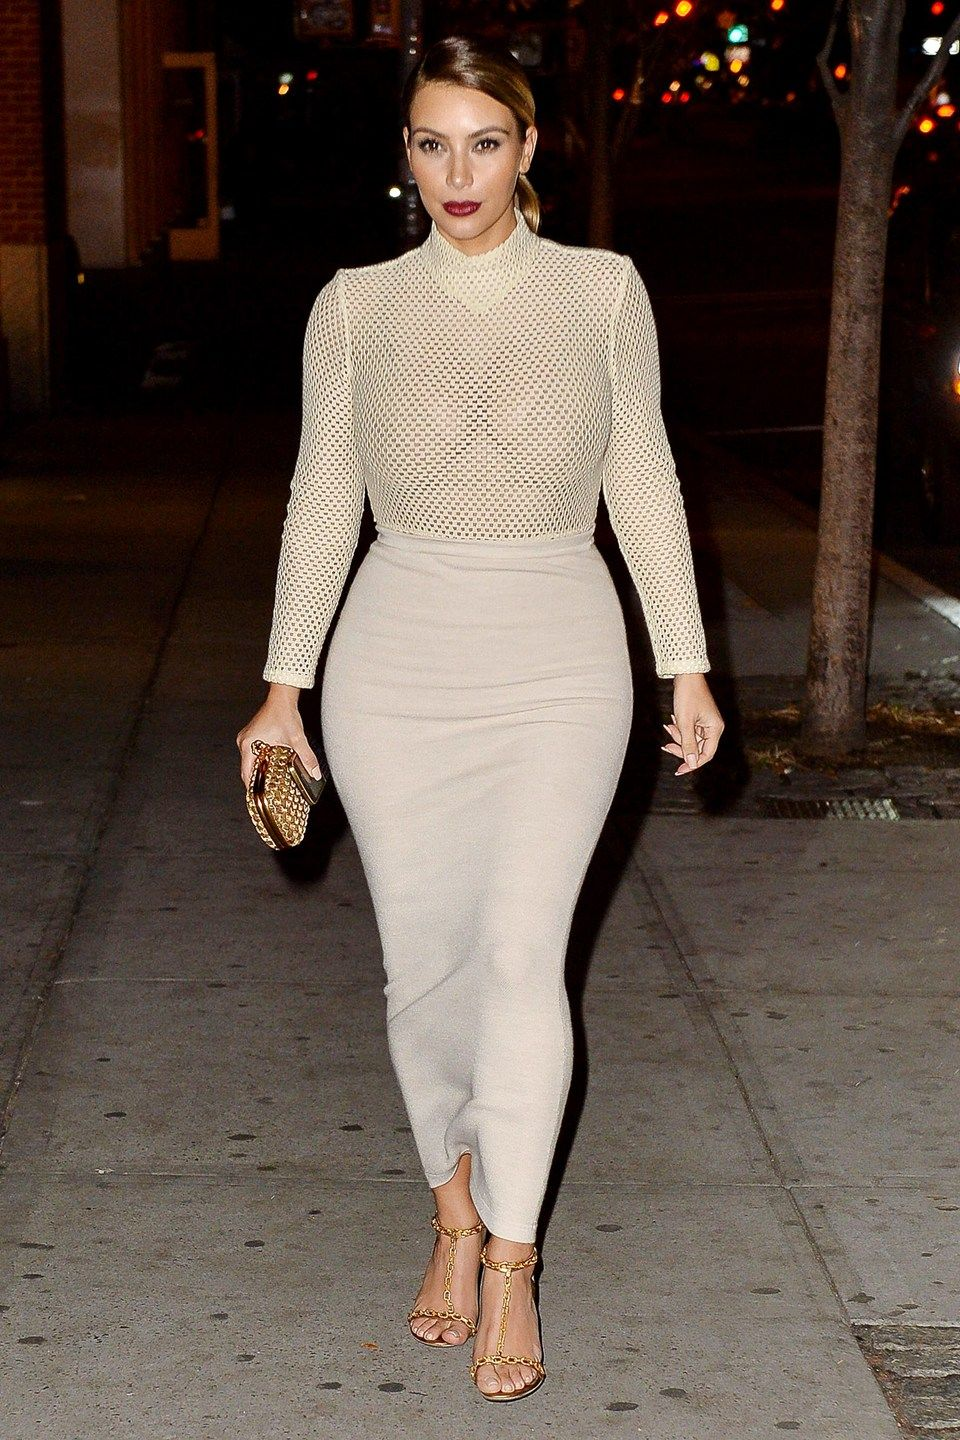 38773b2e39 Kim Kardashian teamed a perforated Veronique Leroy polo neck with a  figure-hugging Donna Karen maxi skirt, Tom Ford chain-detail heels, a low  pony and a red ...